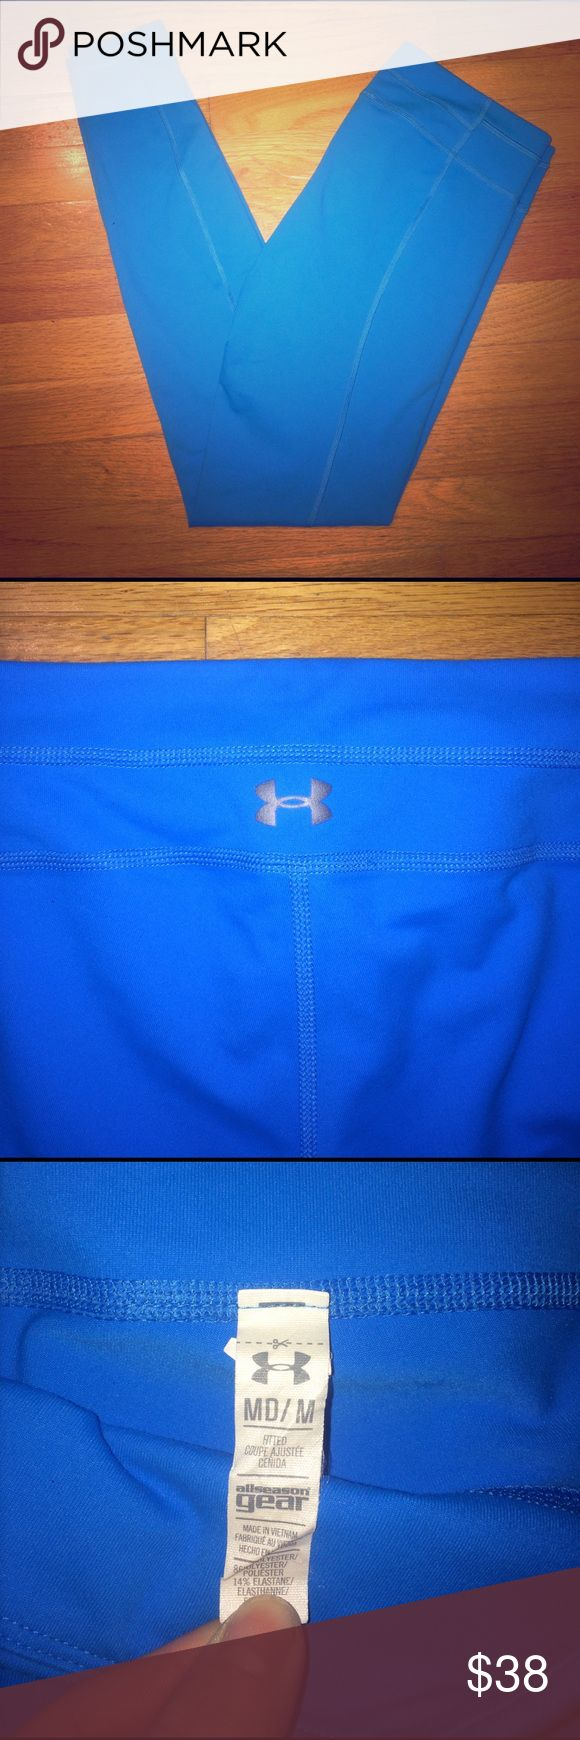 Under Armour Cold Gear Compression Leggings EUC. Vibrant electric blue color. Rare color! Cold gear, fitted style. Only worn a few times. Size M. Hidden pocket on front waist band. Under Armour Pants Leggings